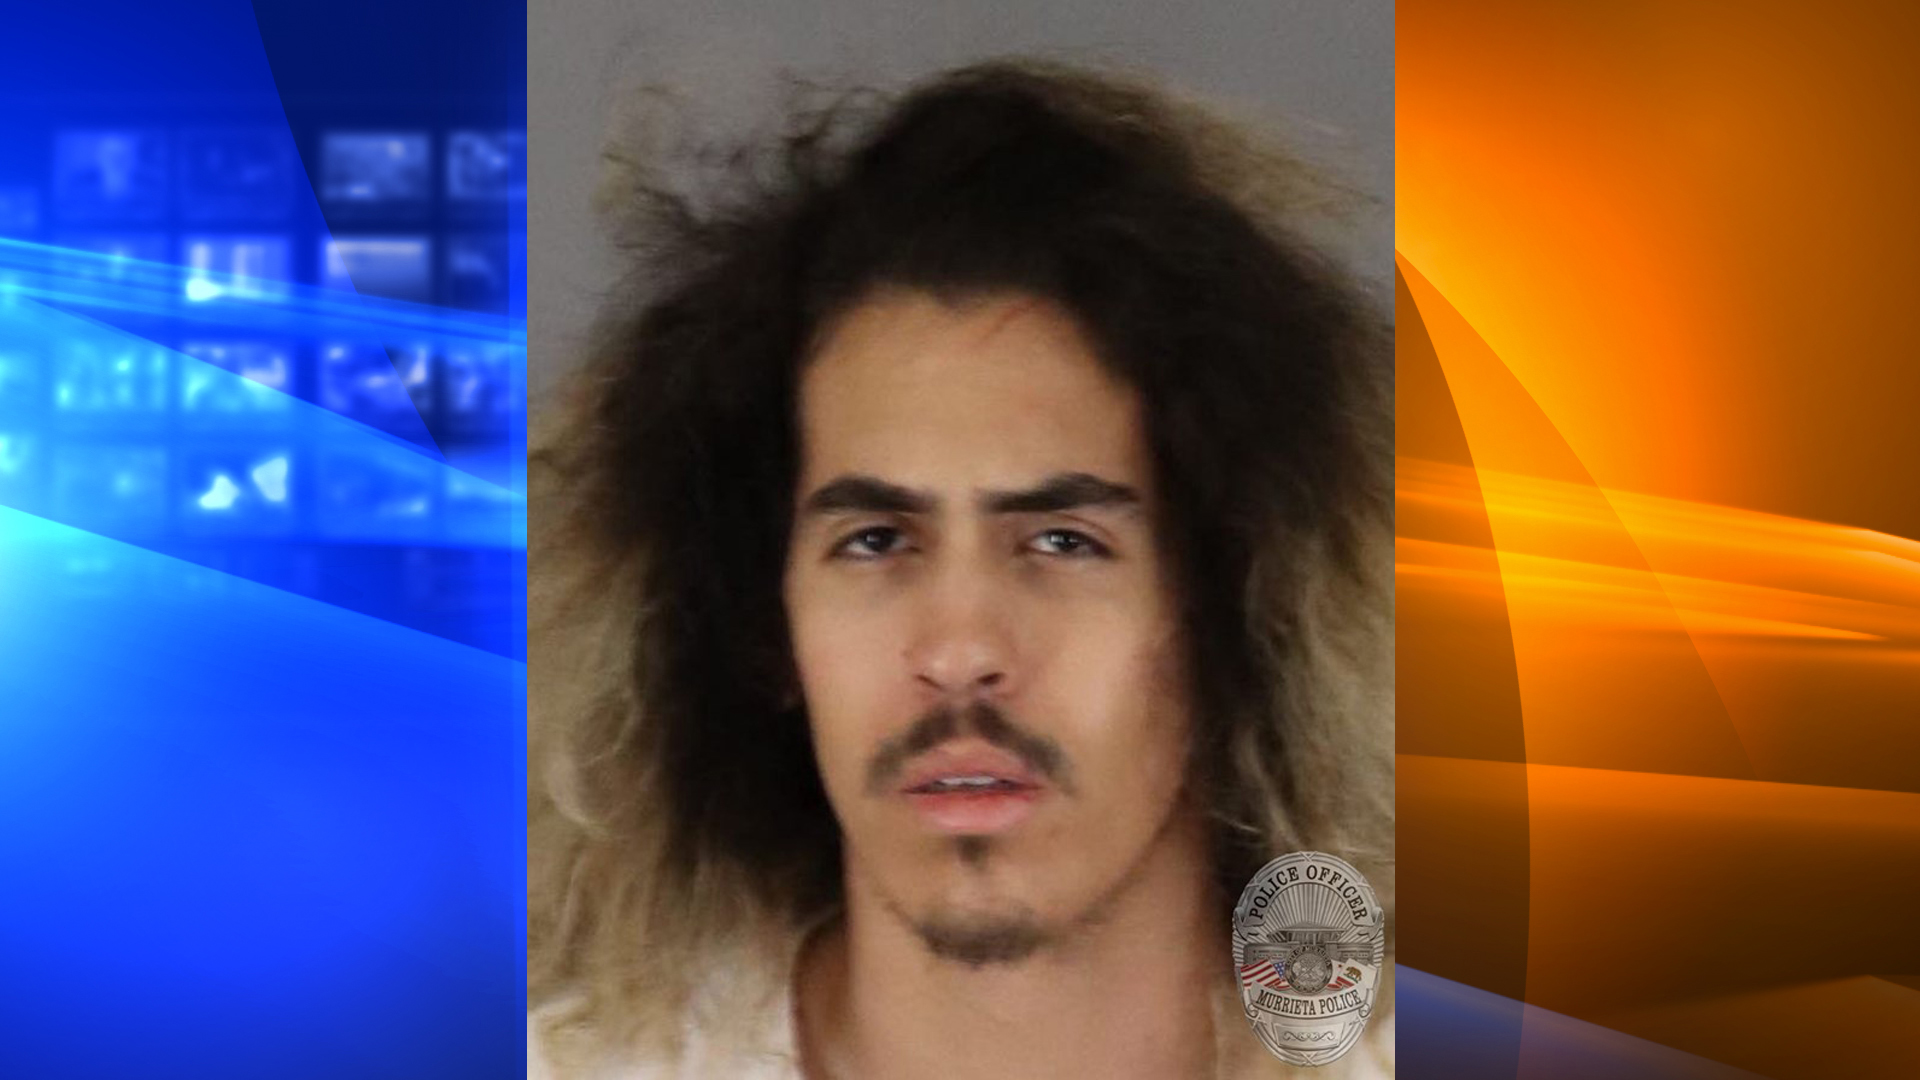 Jacob Aaron Lepe, 21, pictured in a photo released by the Murrieta Police Department following his arrest on July 9, 2019.